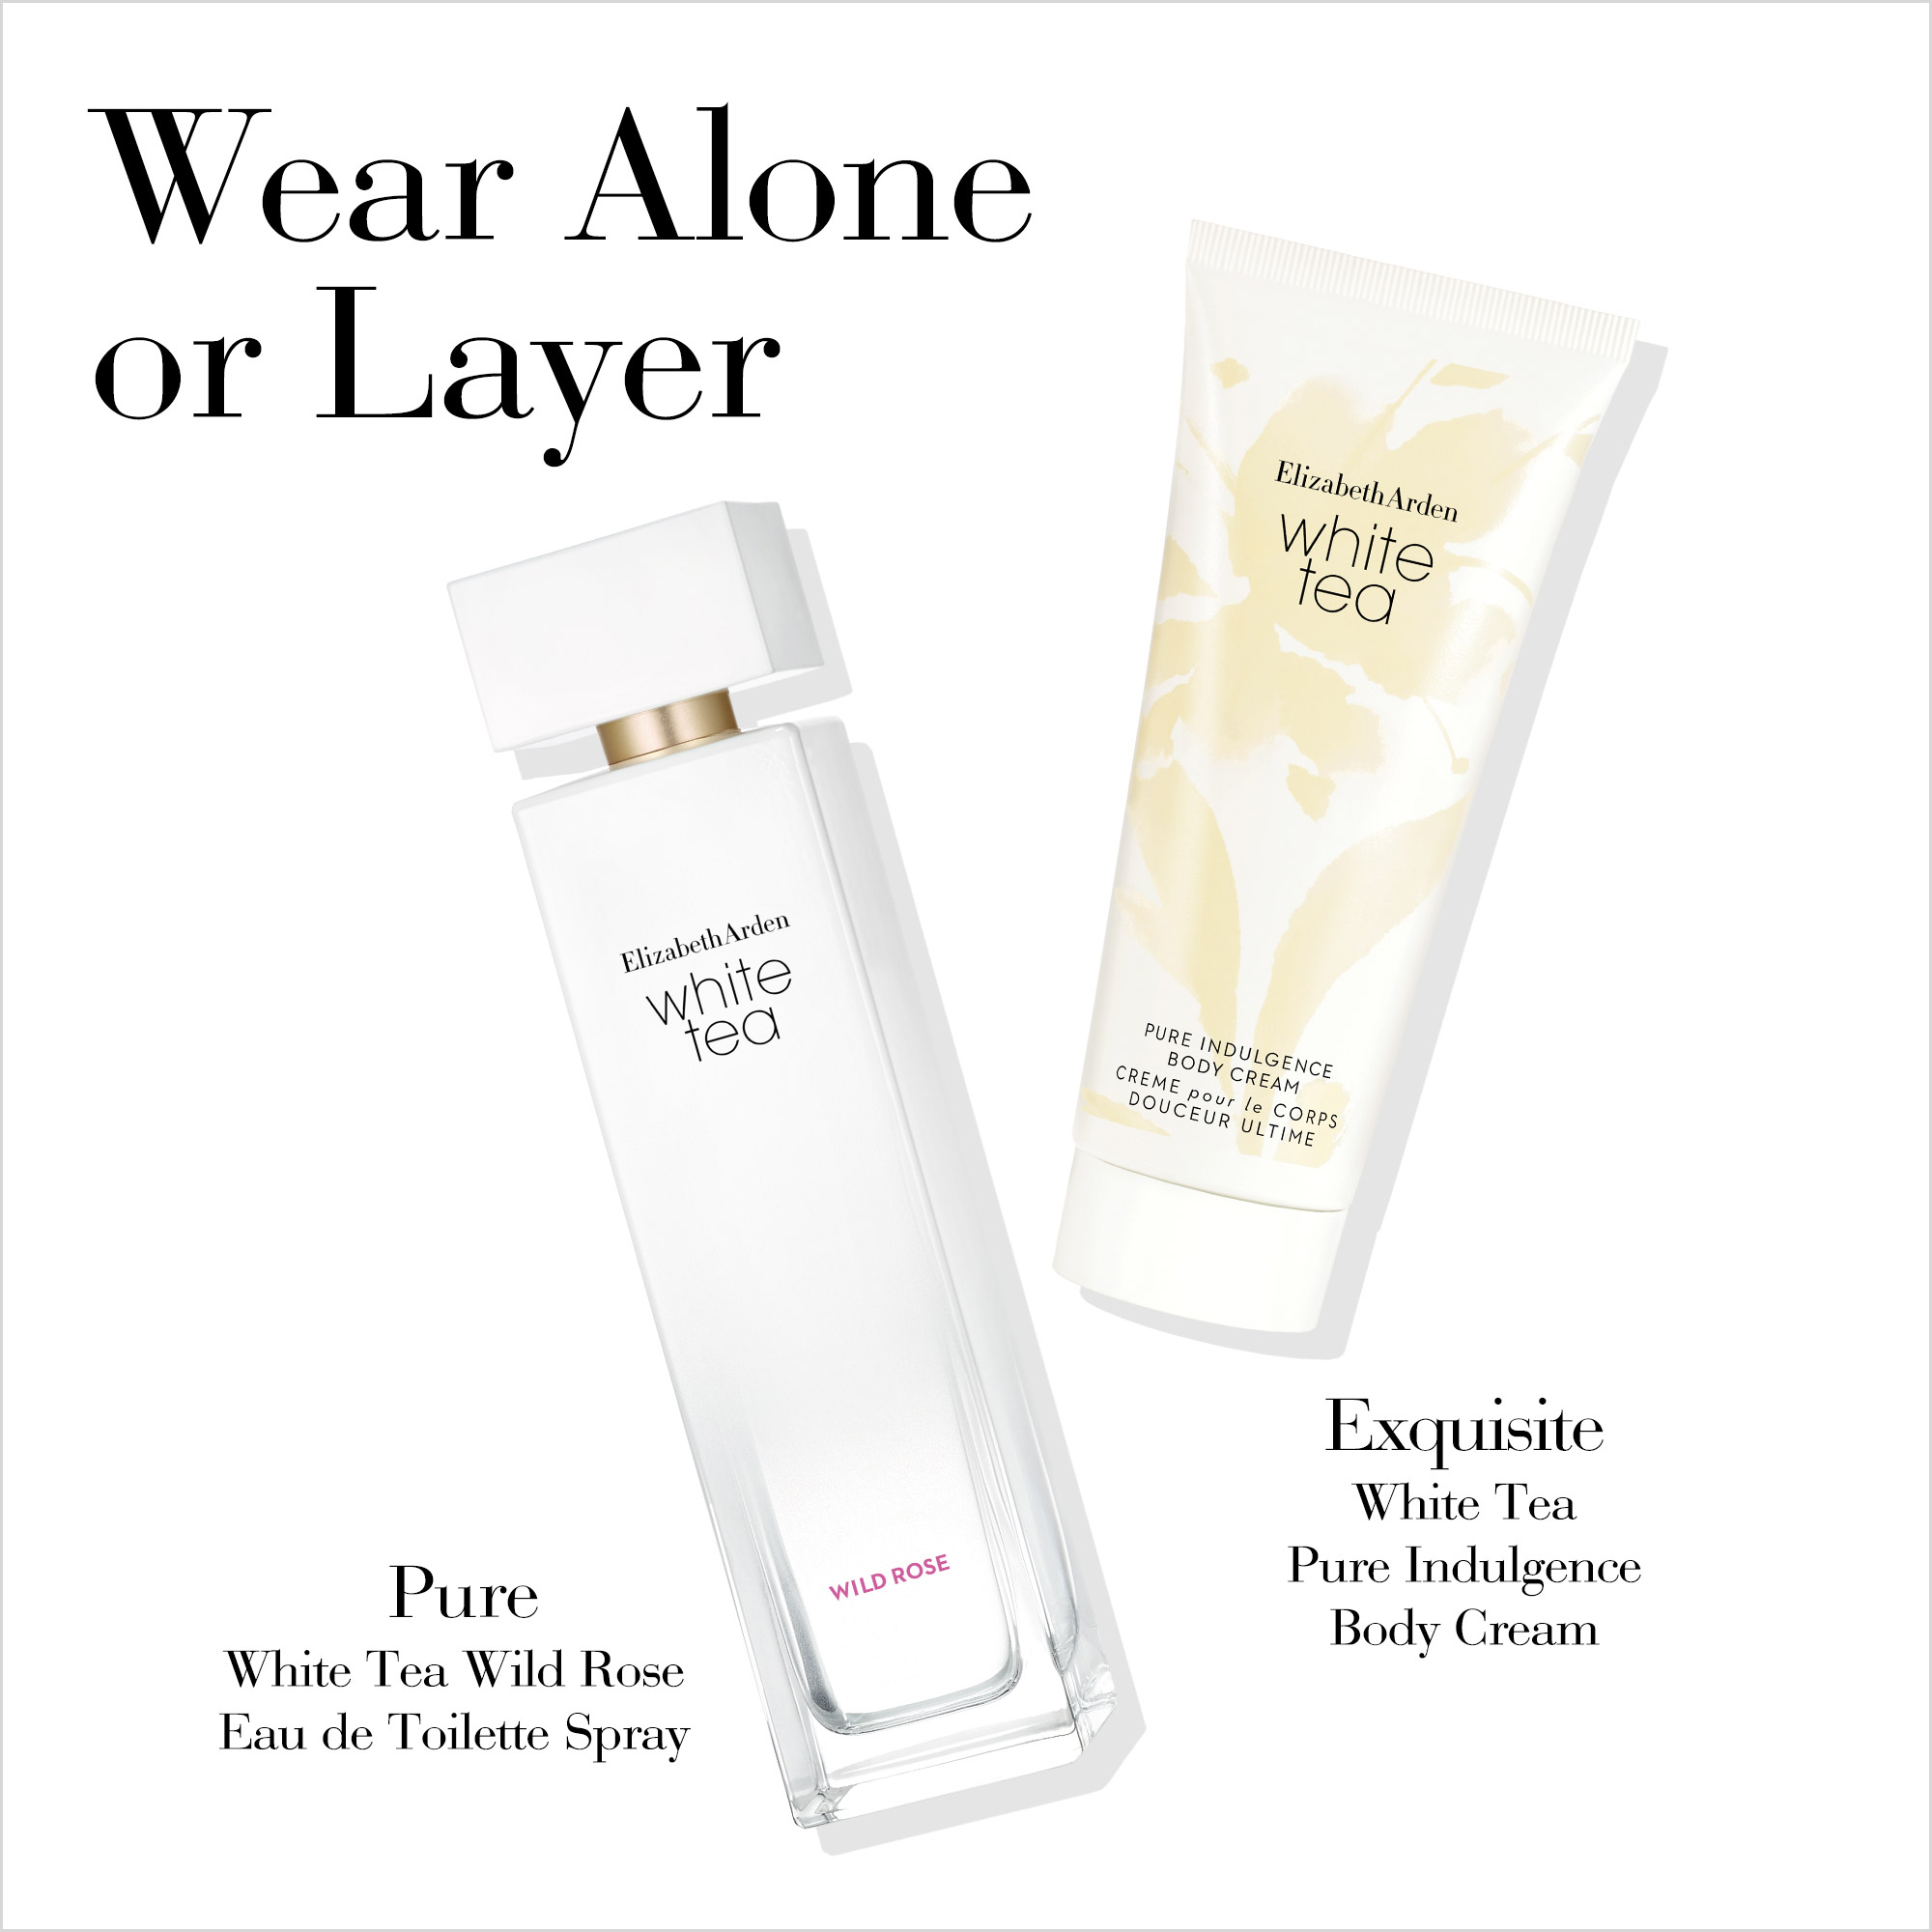 Wear Alone or Layer- Pure White Tea Wild Rose Spray and Exquisite White Tea Body Cream